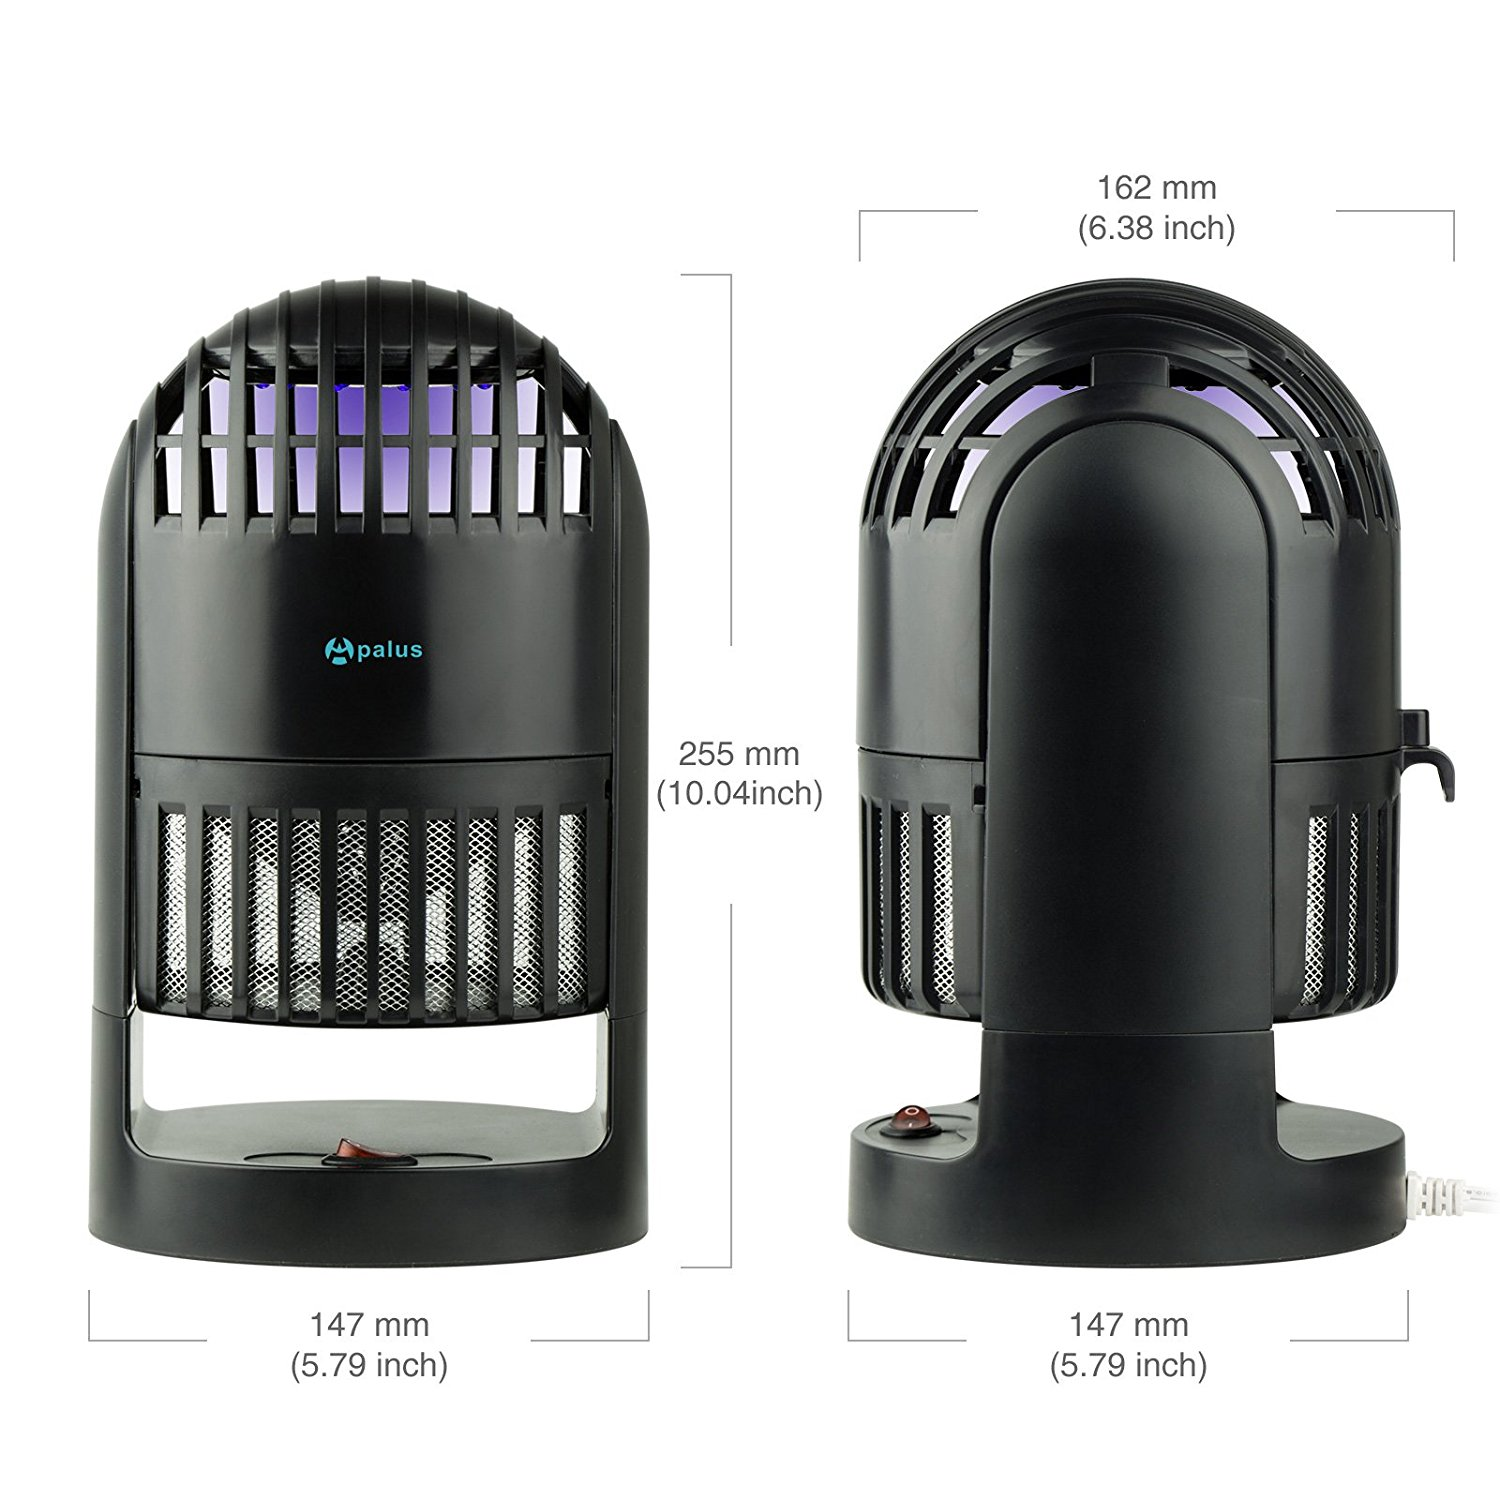 1. Apalus LED Insect Trap, Smart Indoor Mosquito Traps, Mosquito Killer